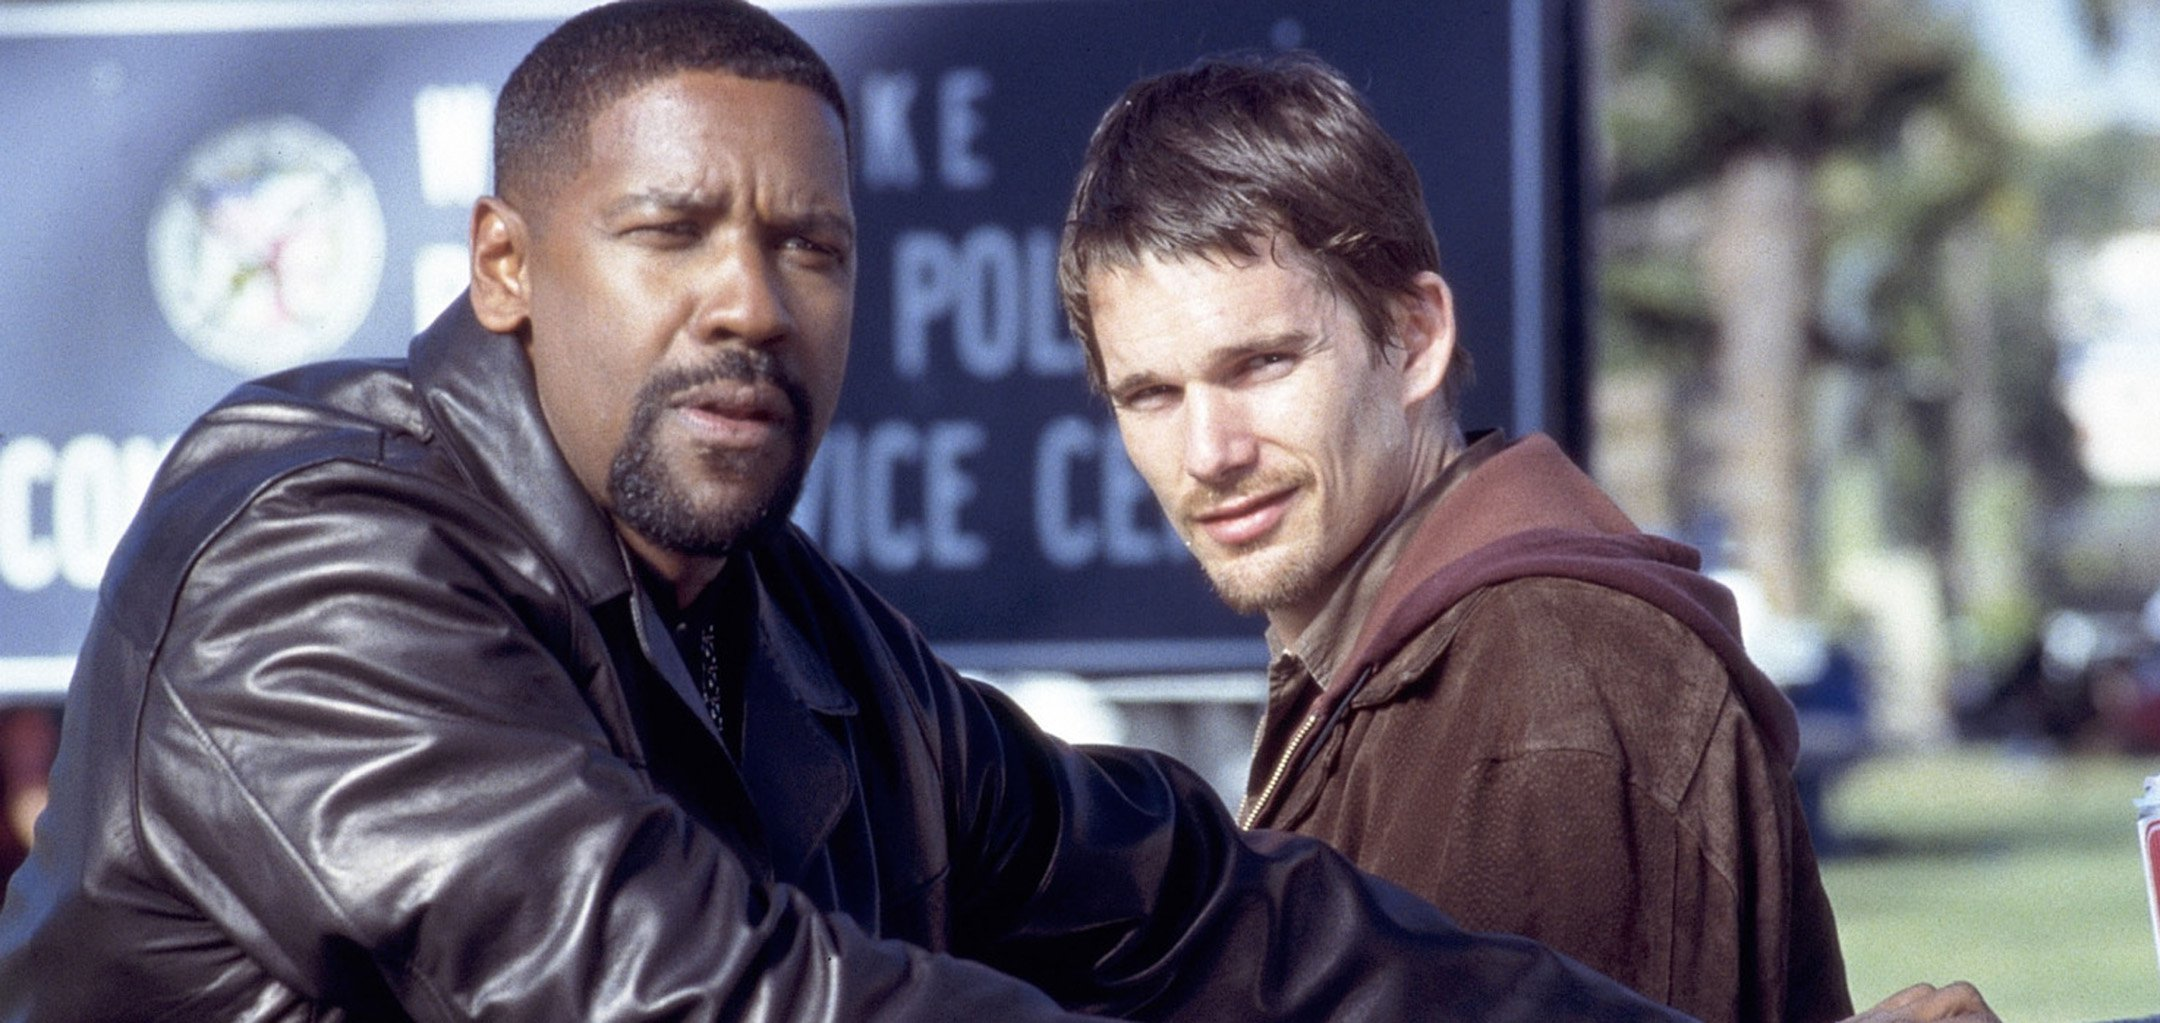 Denzel Washington and Ethan Hawke look off into the distance in a still from Training Day (2001) - Hero image